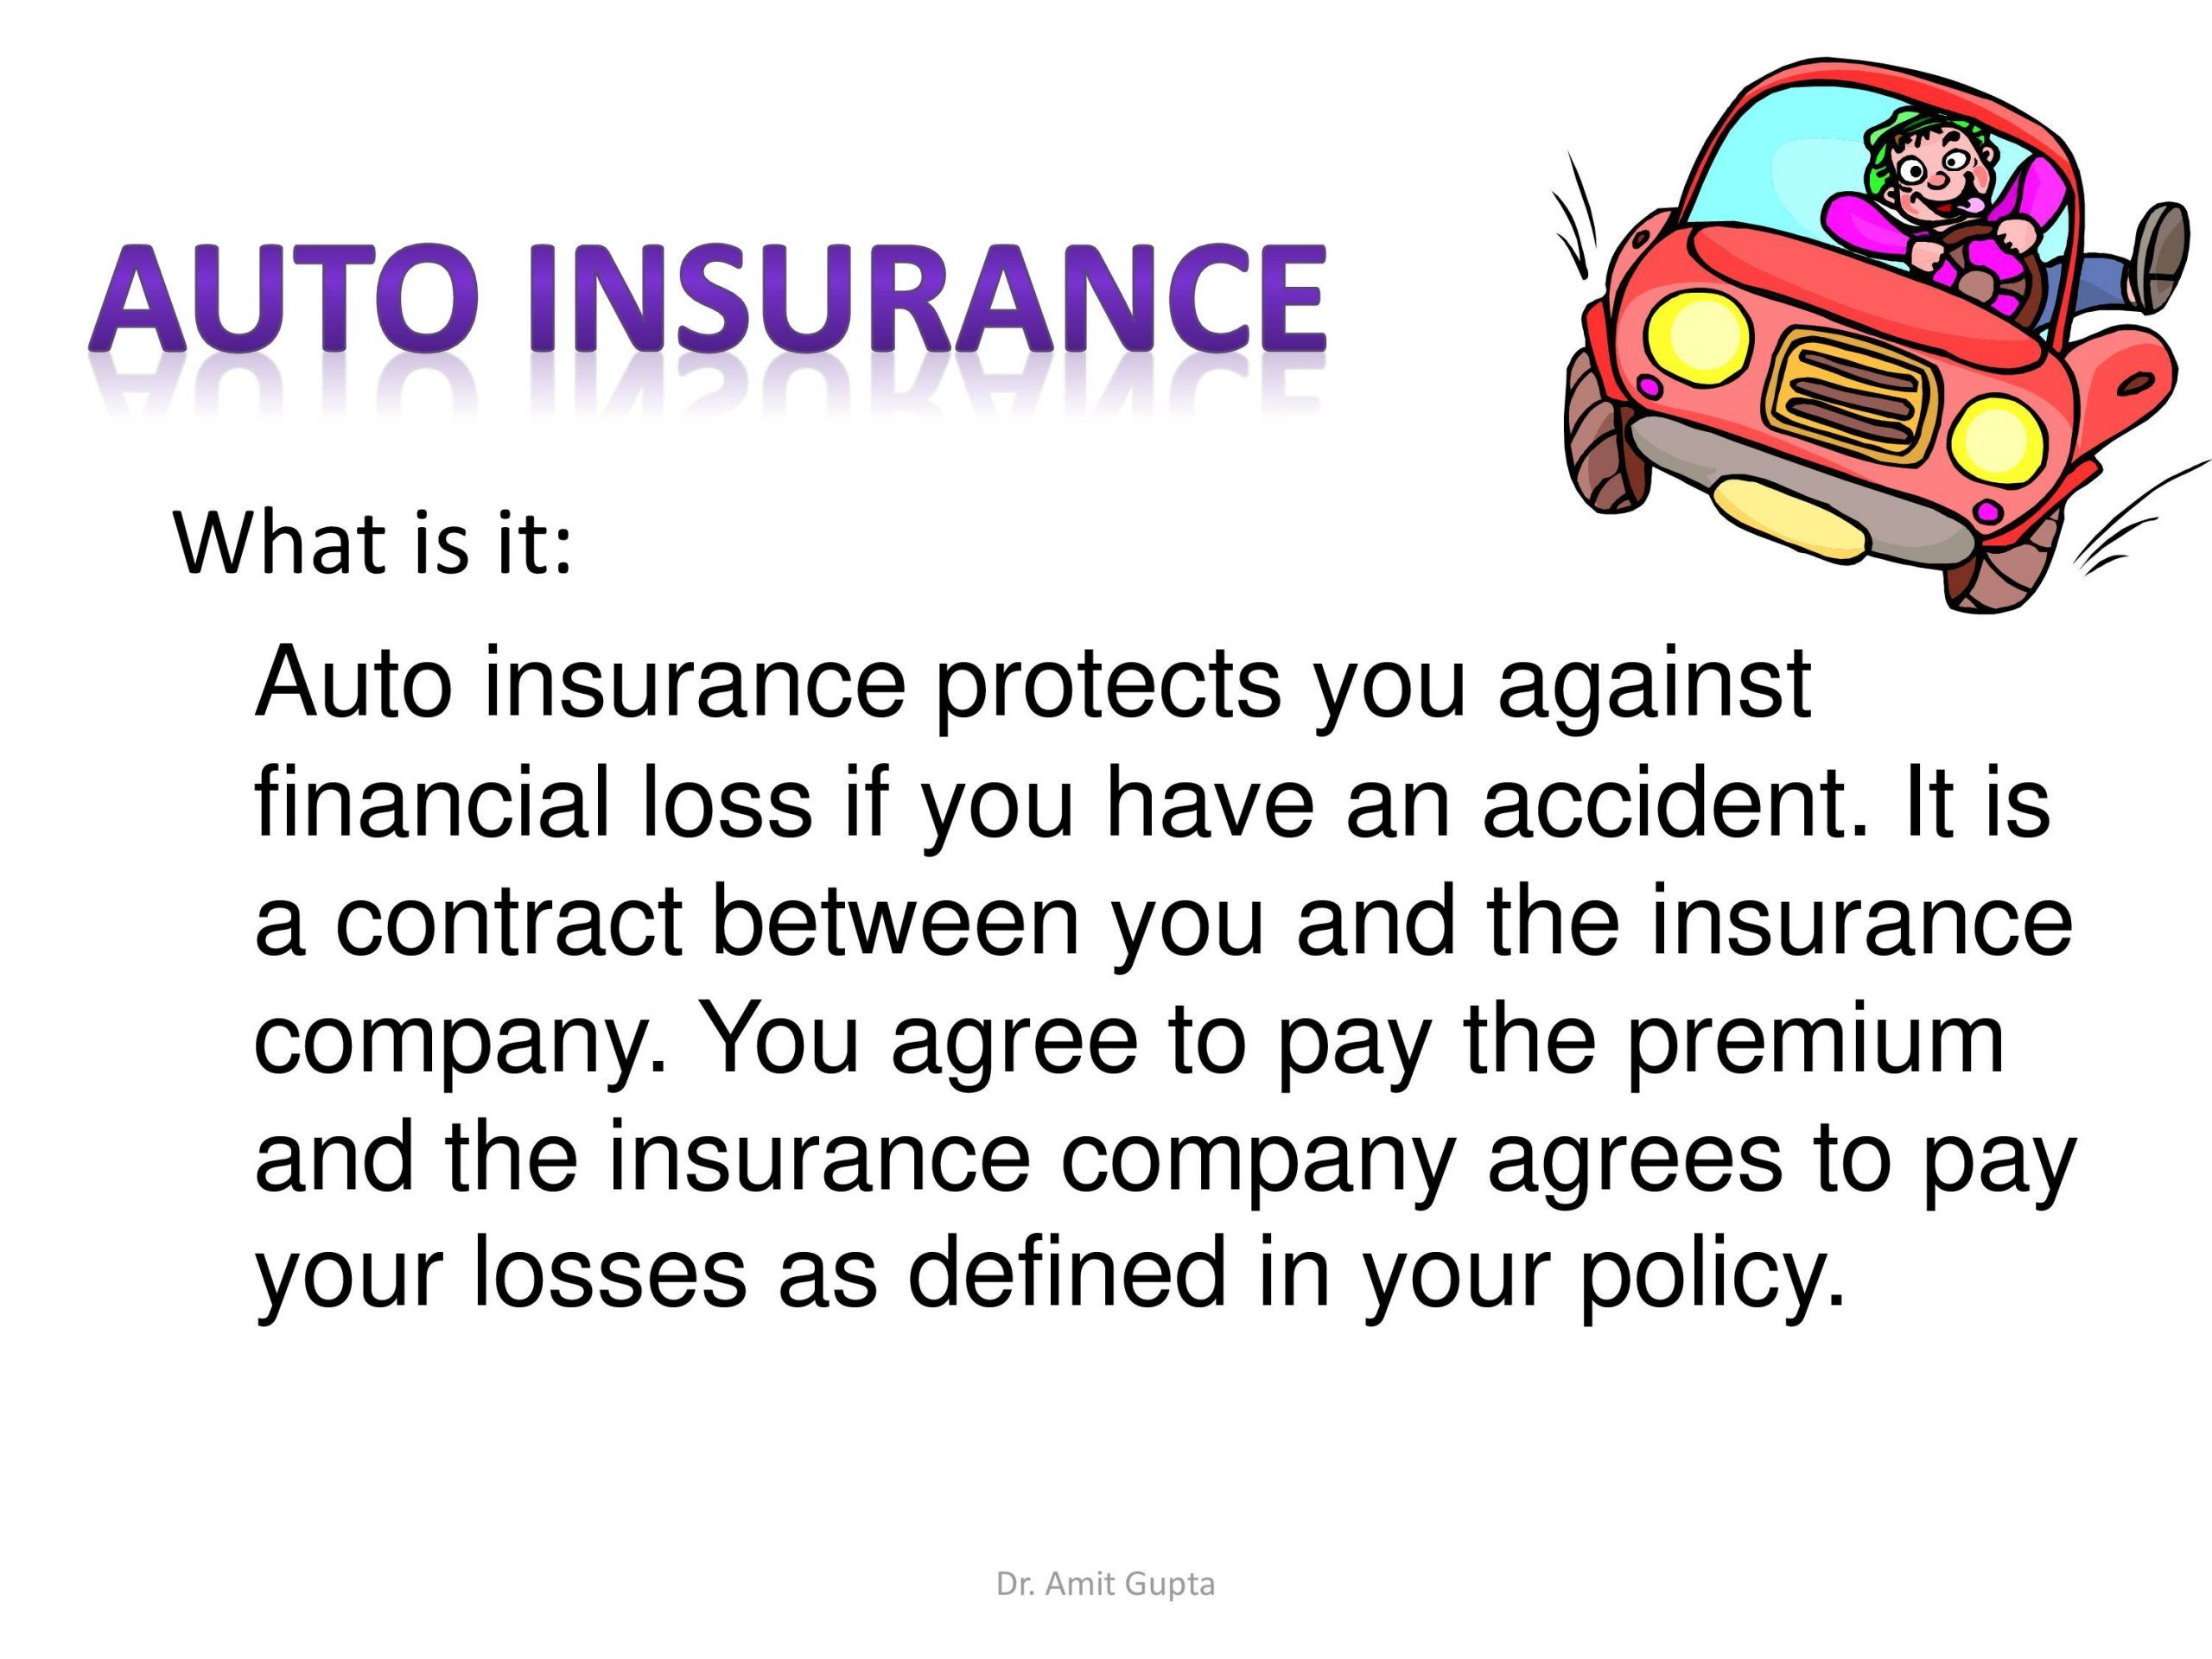 96 reference of Auto Vehicle Insurance Definition in 2020